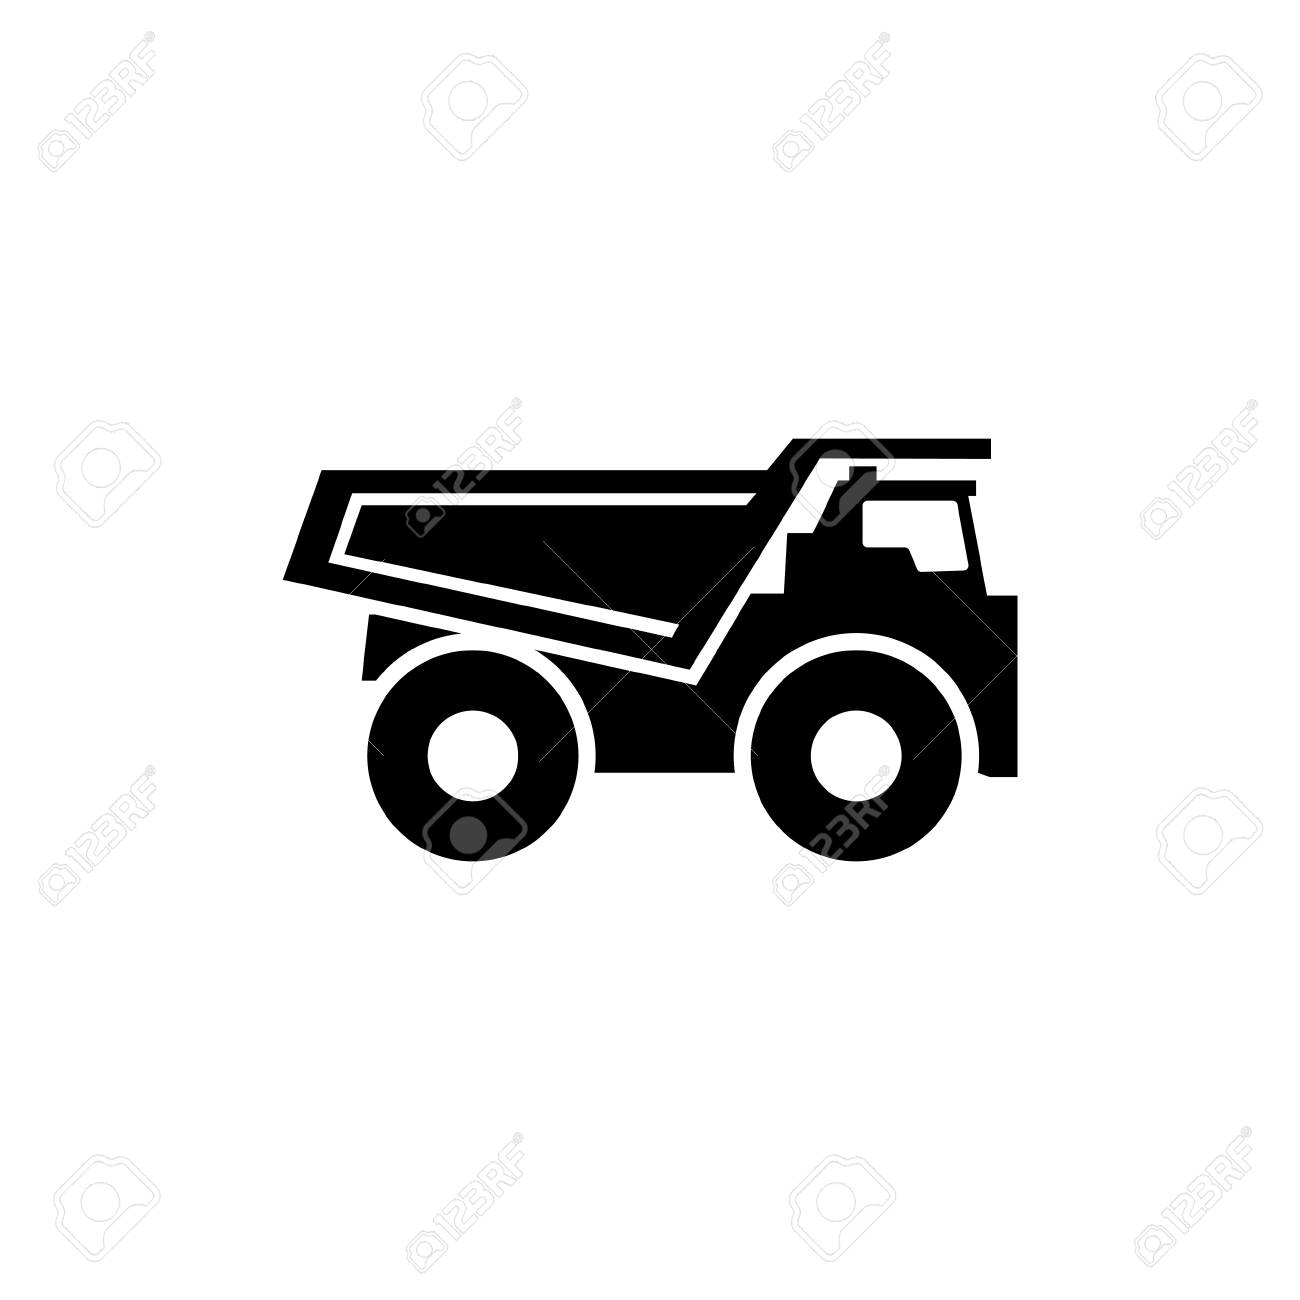 Dump truck flat vector icon simple black symbol on white background stock photo